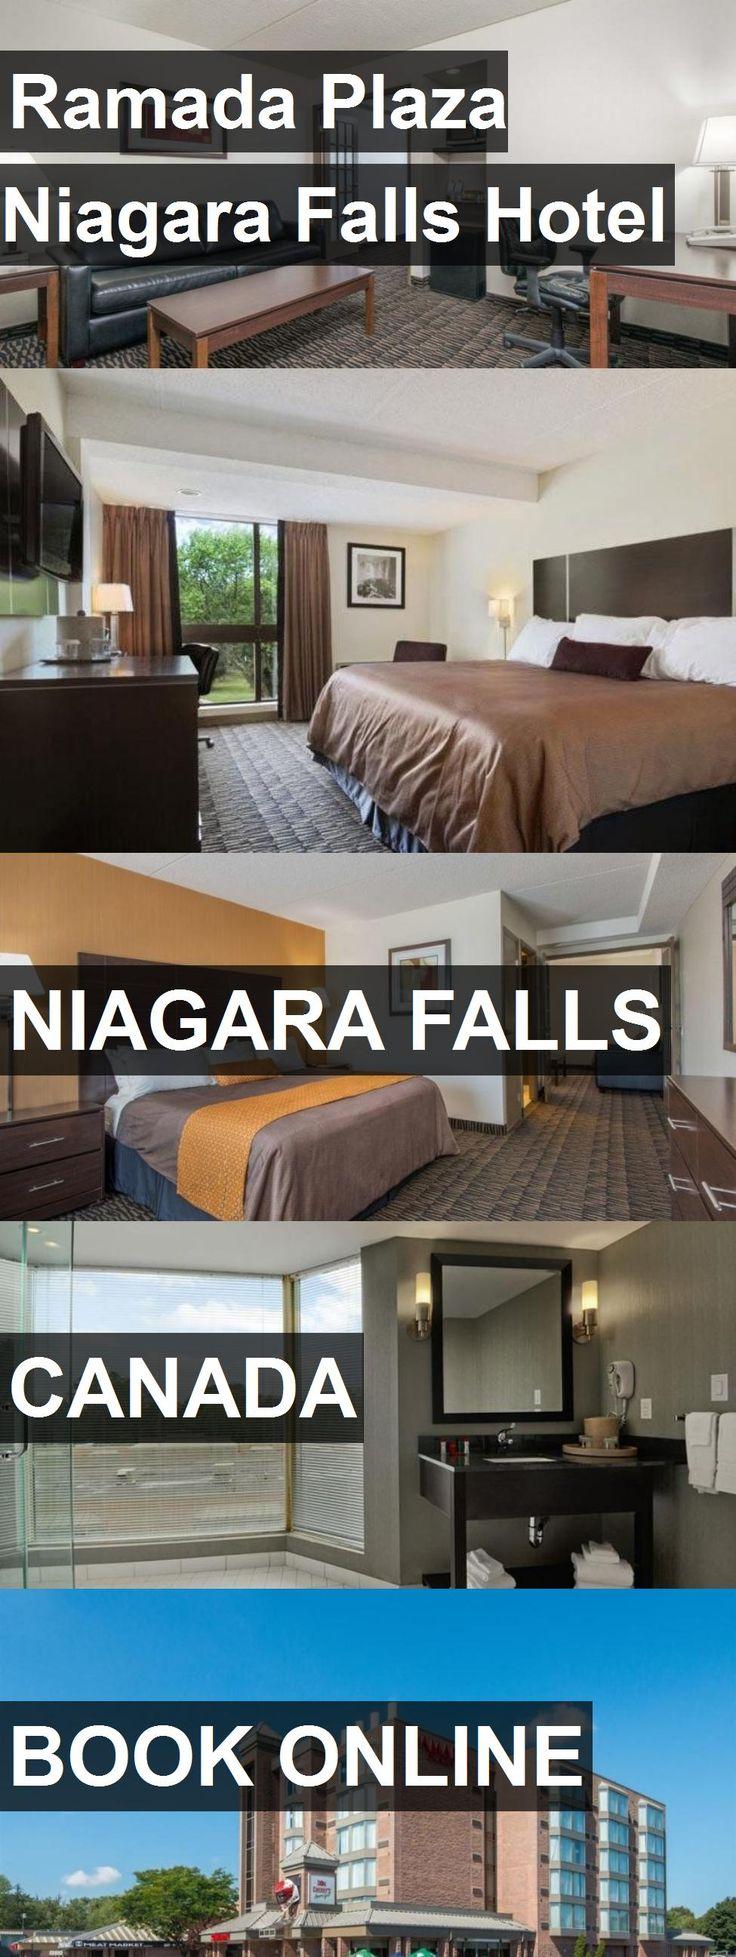 Ramada Plaza Niagara Falls Hotel in Niagara Falls, Canada. For more information, photos, reviews and best prices please follow the link. #Canada #NiagaraFalls #travel #vacation #hotel